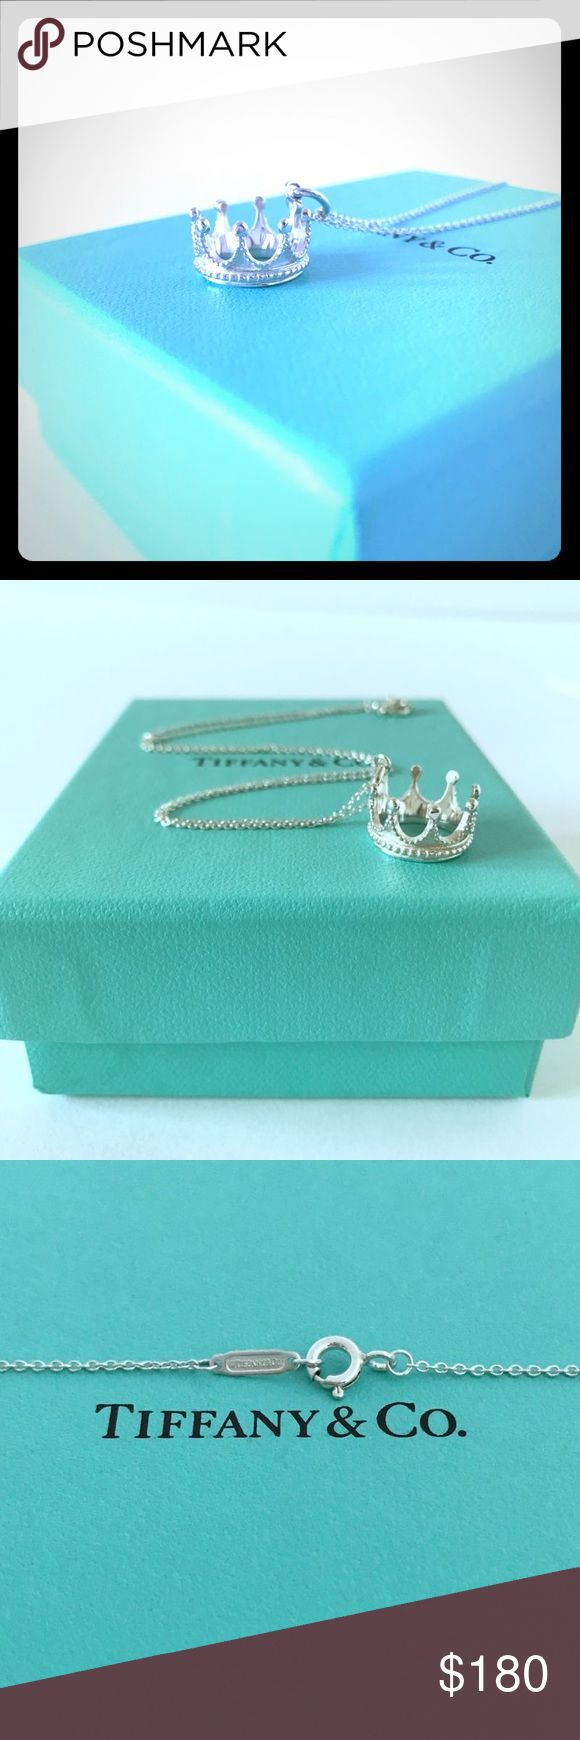 "Tiffany and Co. Crown Necklace Royally appointed. Charm in sterling silver. On a 16"" Tiffany and Co. Original Sterling silver chain. 100% Authentic new in box with dust bag, pouch and gift bag. Please buy with confidence, high rated seller. Tiffany & Co. Jewelry Necklaces"